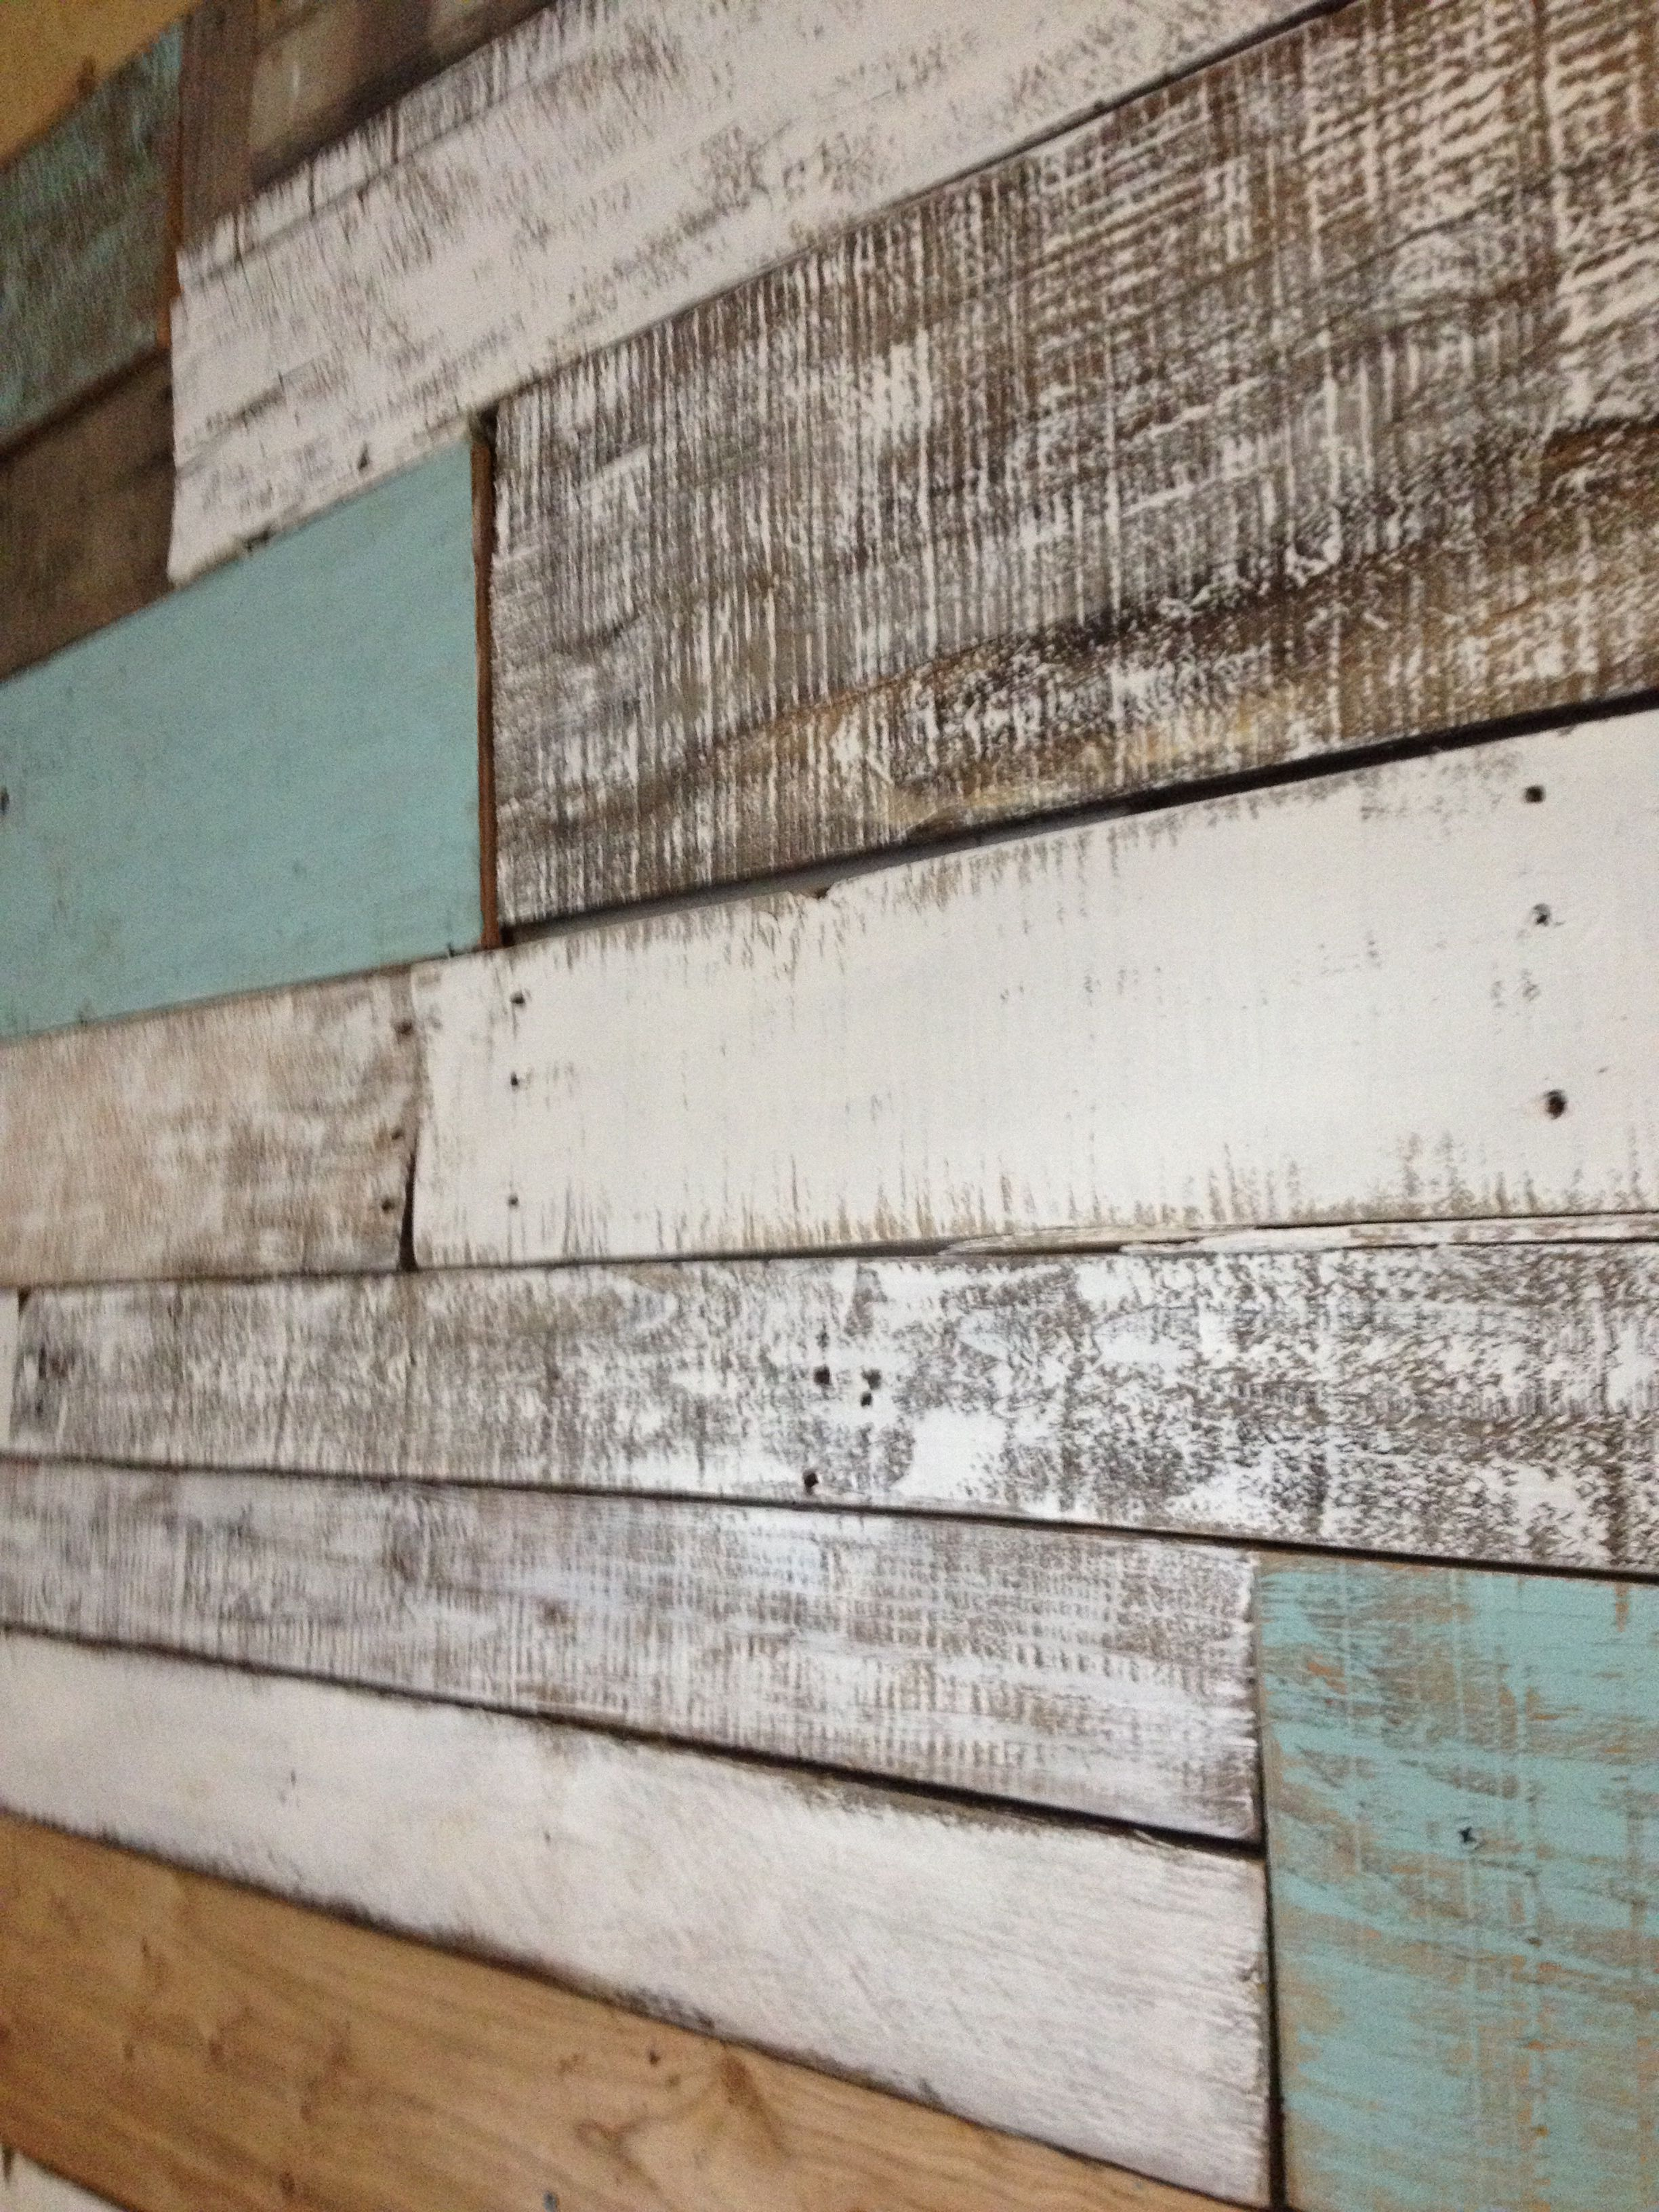 Pin By Fran Gregory On Reclaimed Wood Restore Wood Wood Rustic Wood Walls